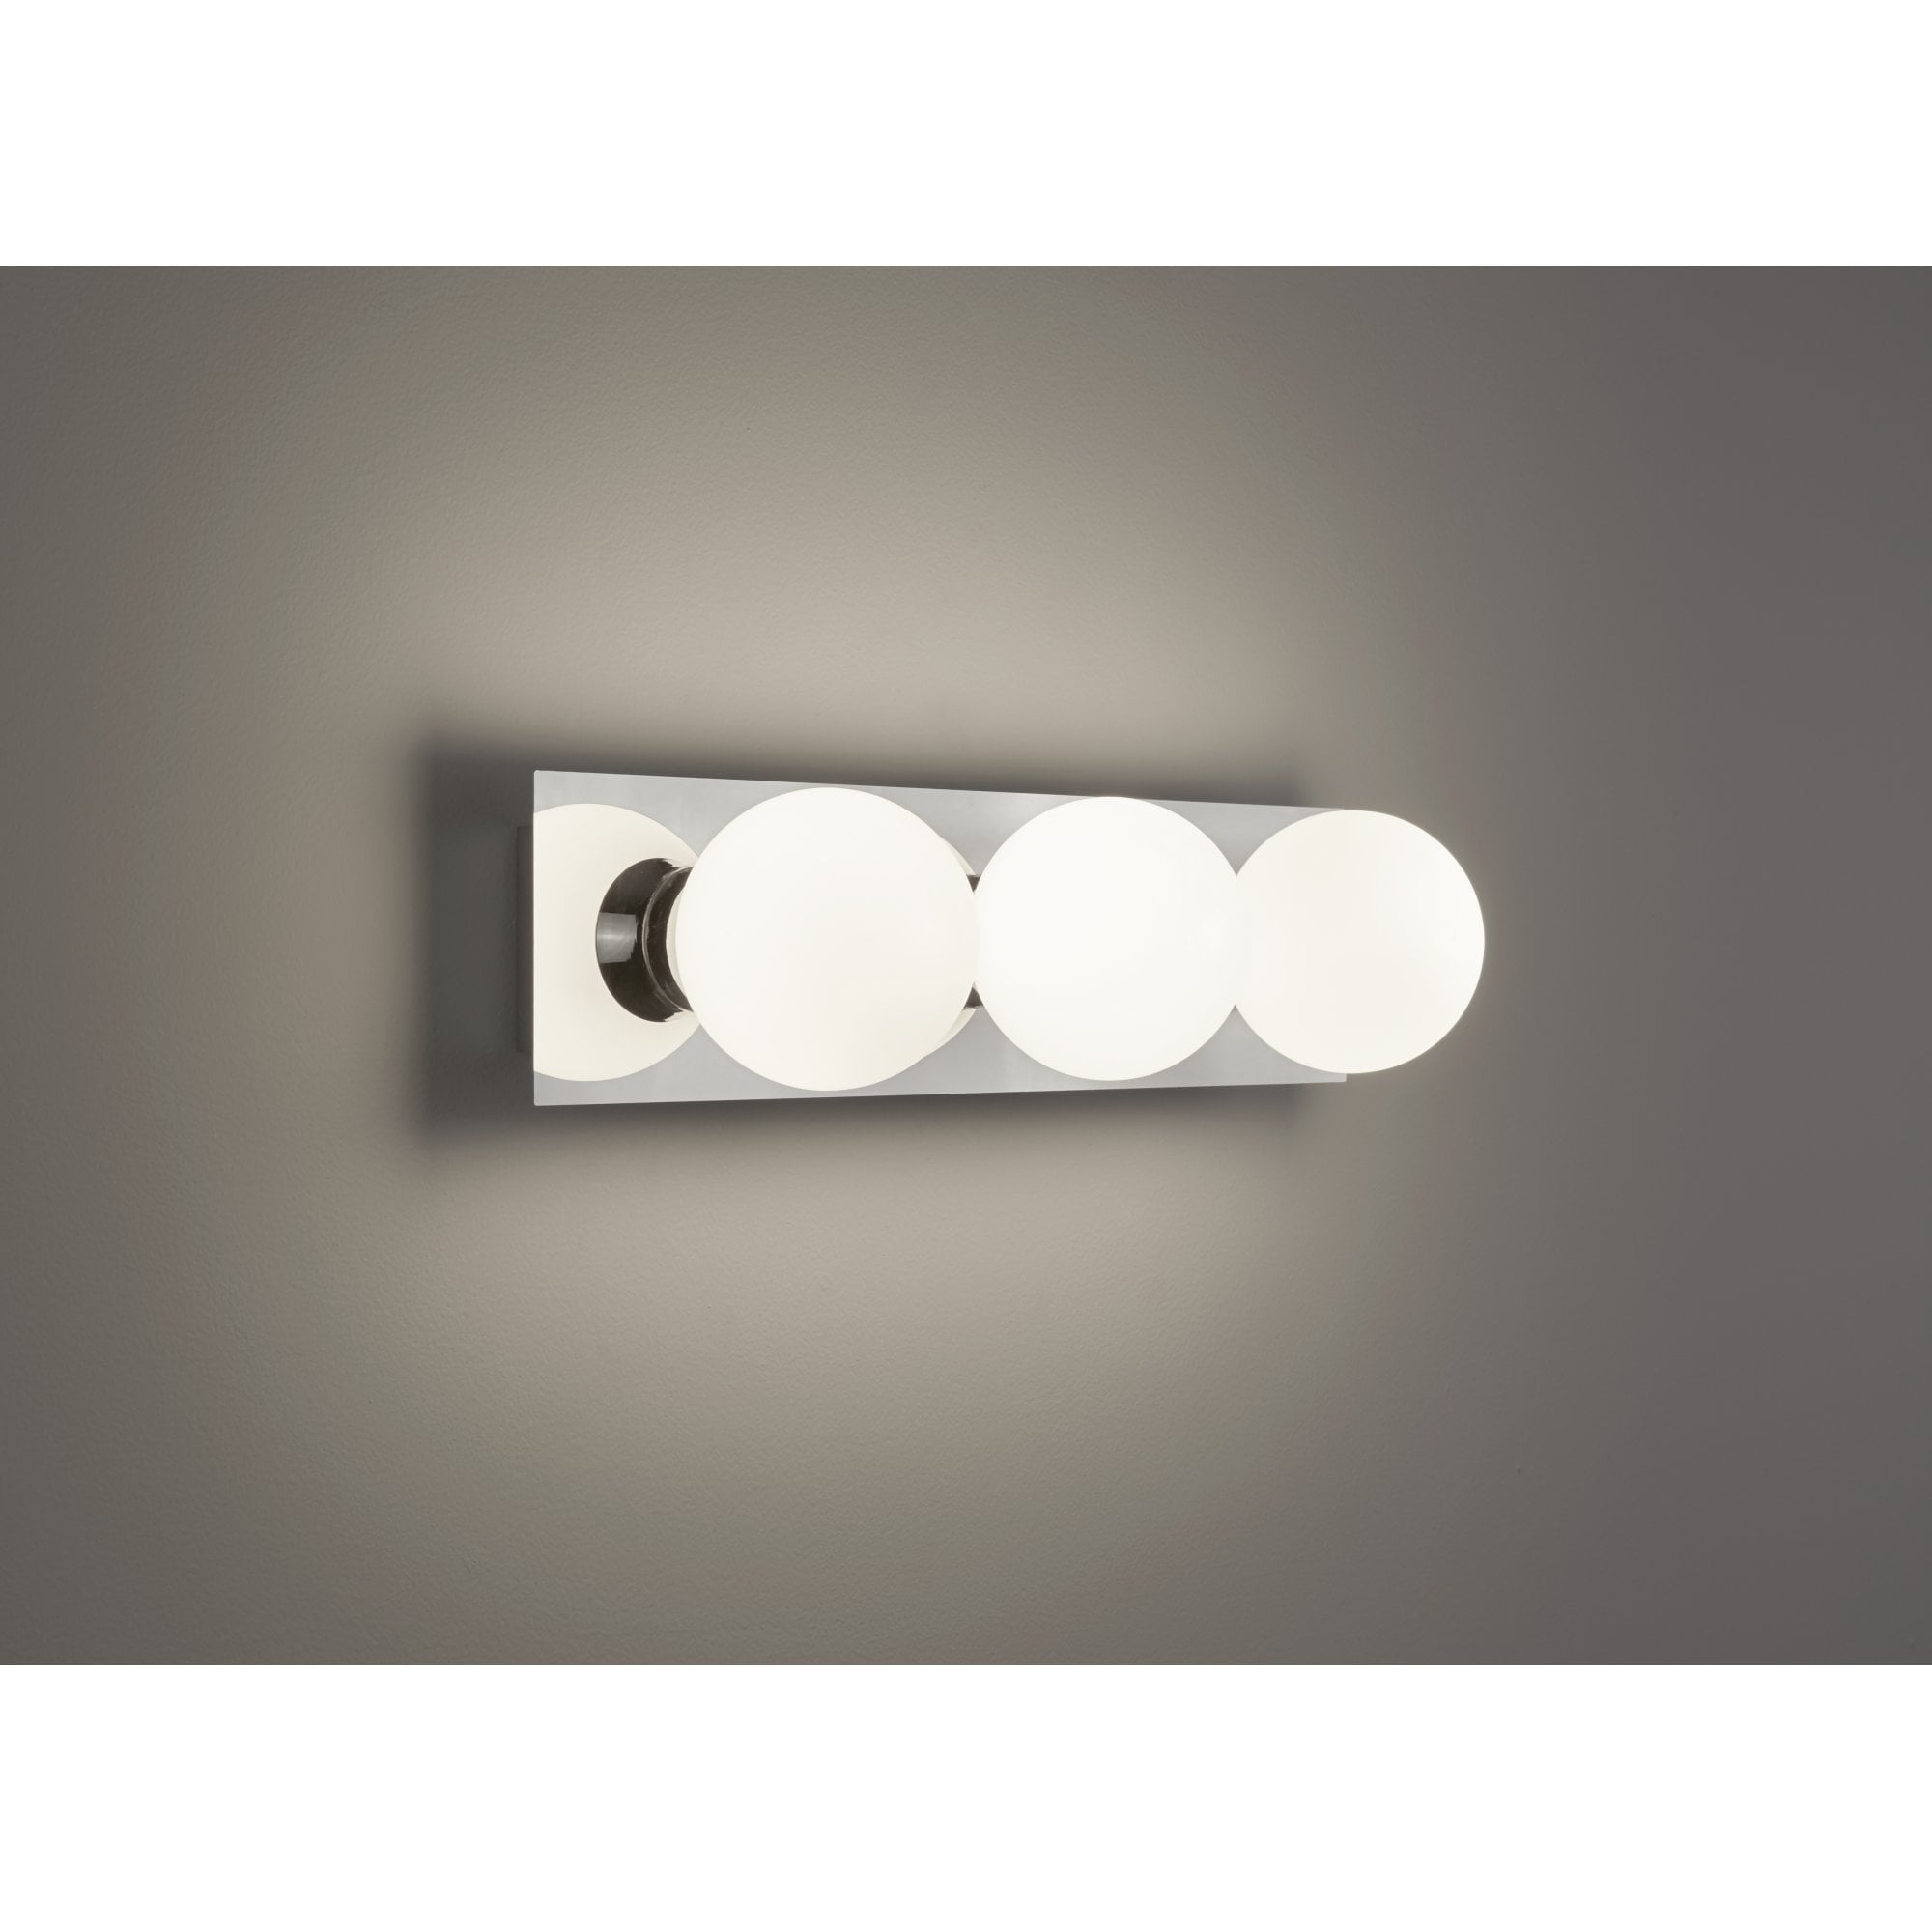 Thlc Contemporary Bathroom Led Above Mirror Wall Light In Polished Chrome Finish Ip44 Lighting From The Home Lighting Centre Uk